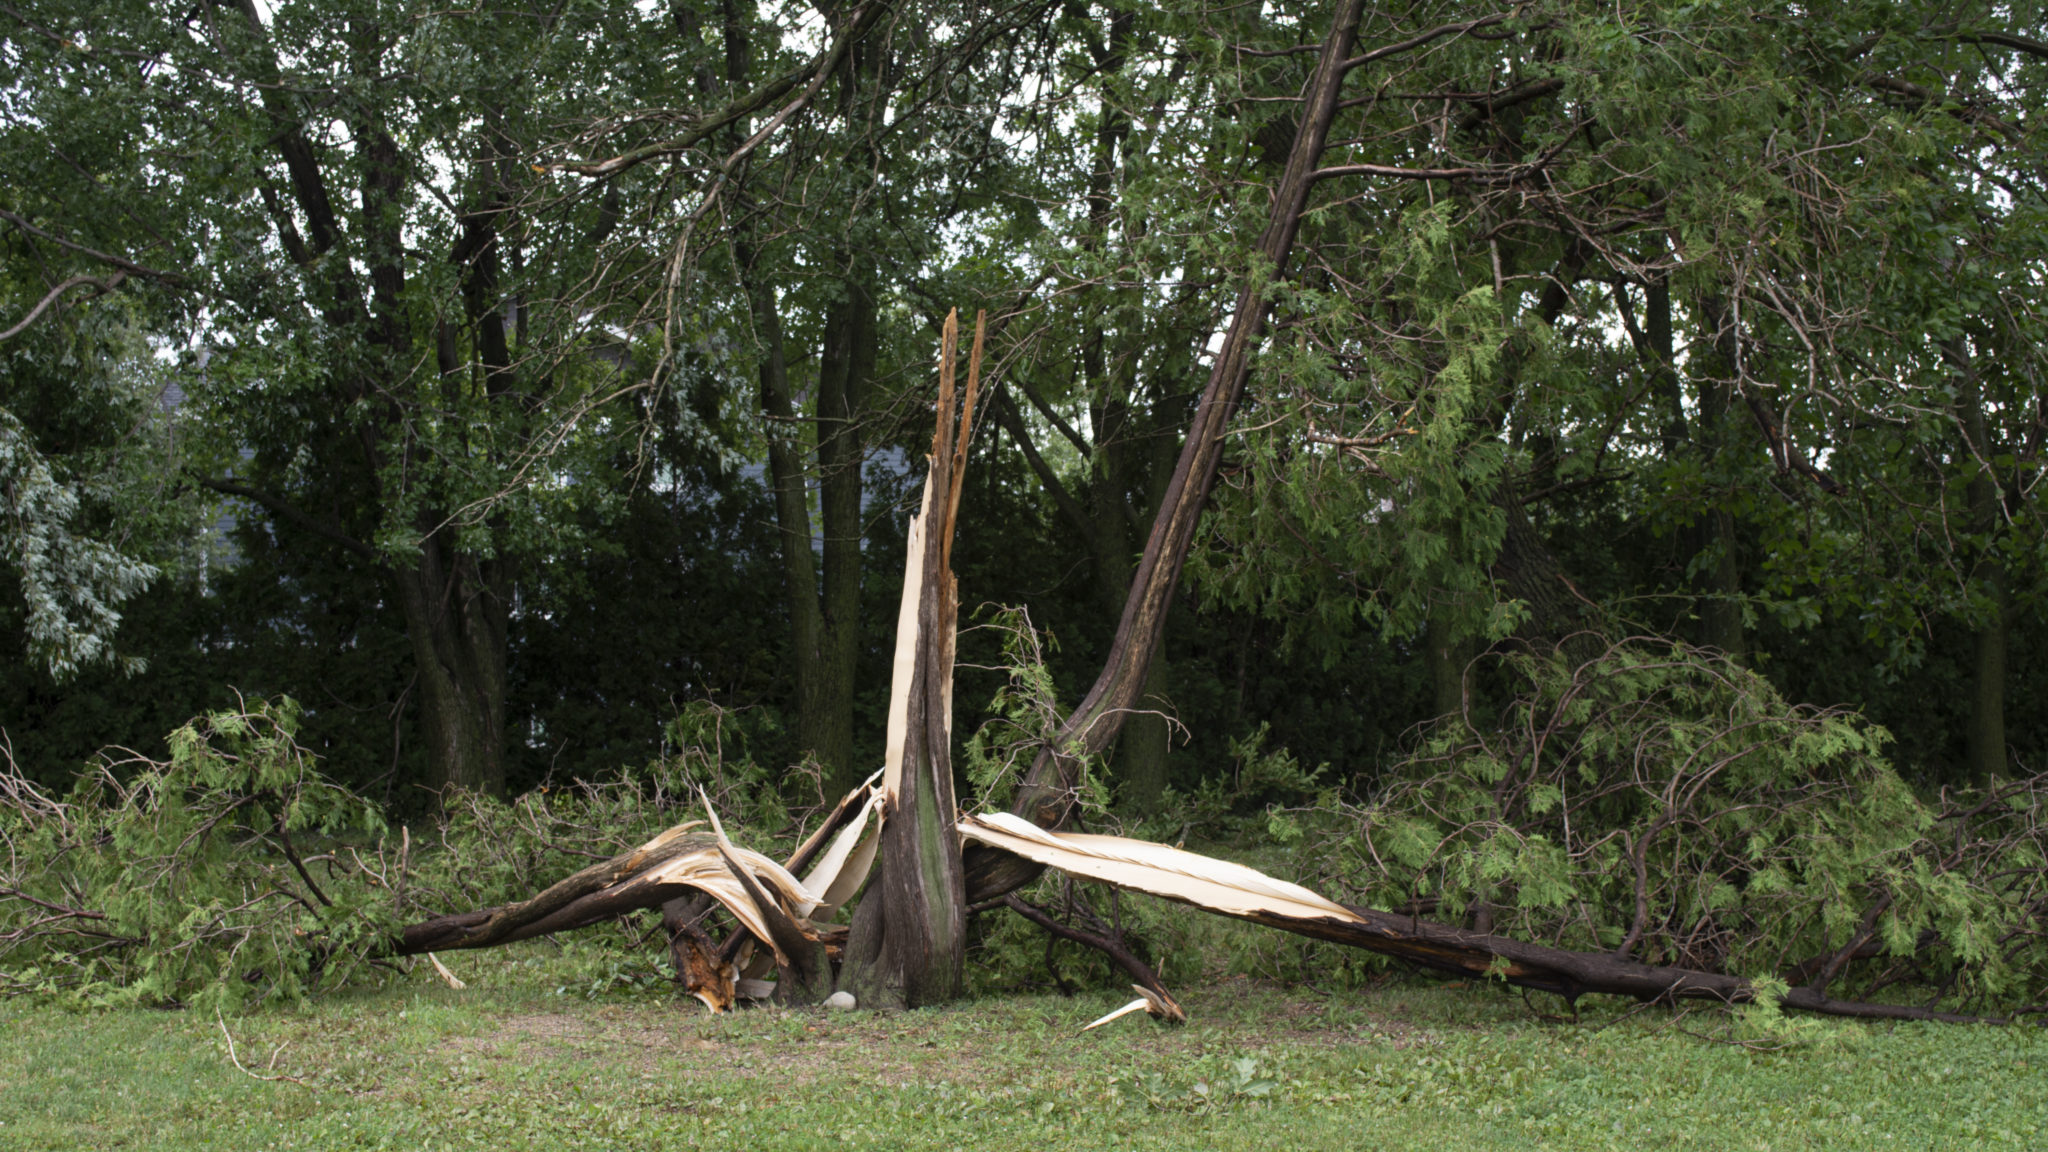 Downed tree from storm